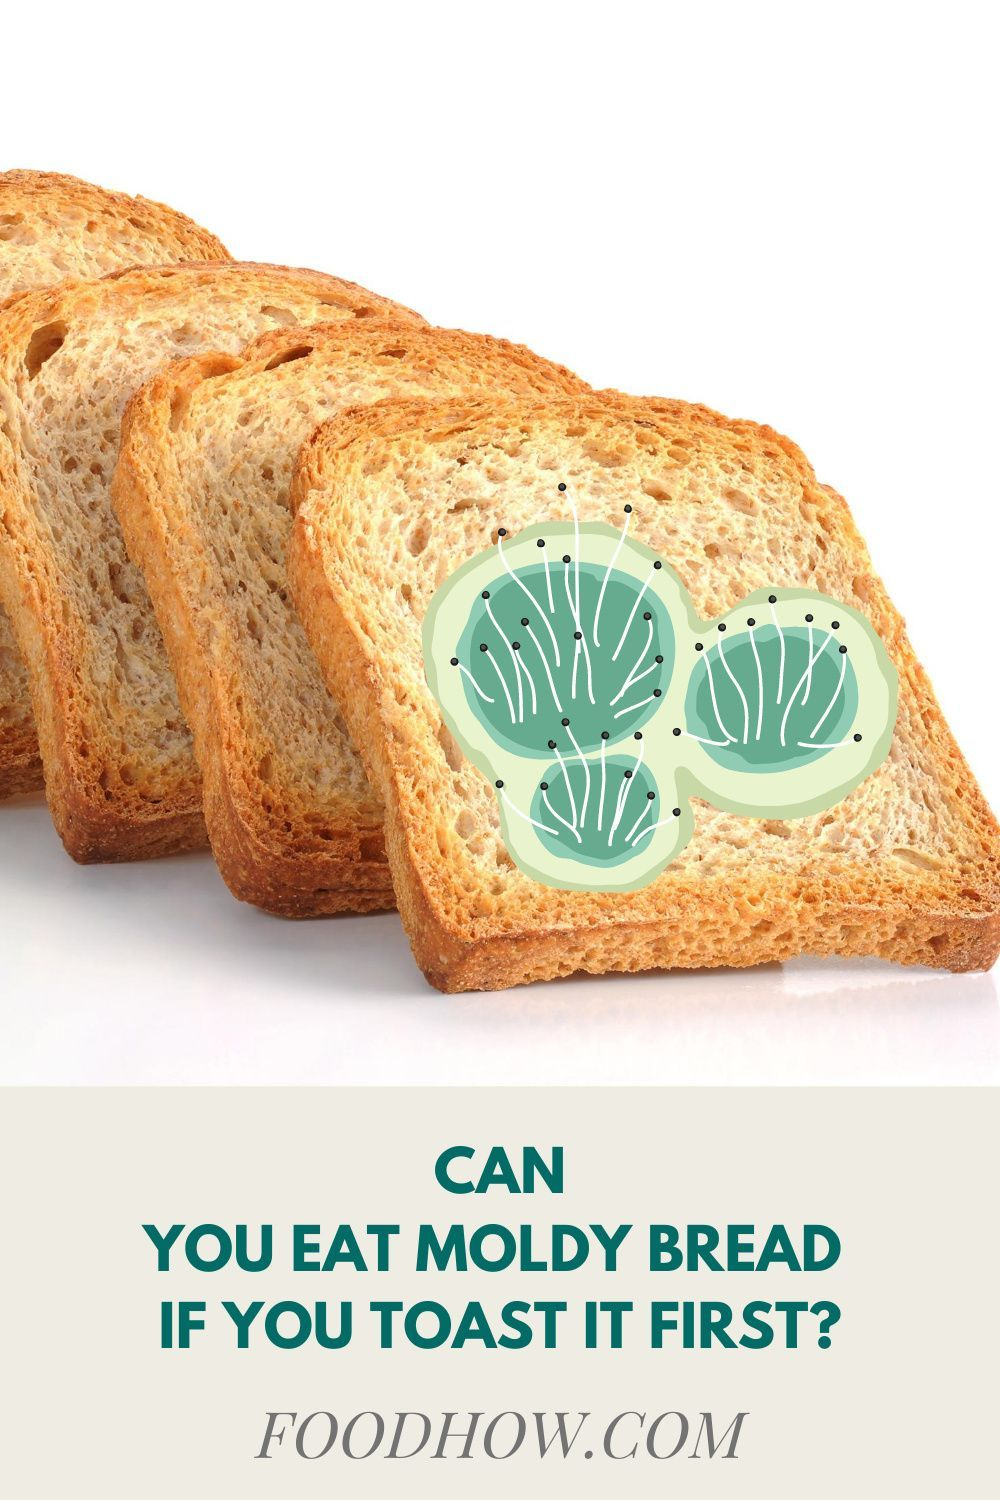 How Soon Do I Get Sick After Eating A Moldy Bread This Will Happen In 2021 Eat Food Food Safety